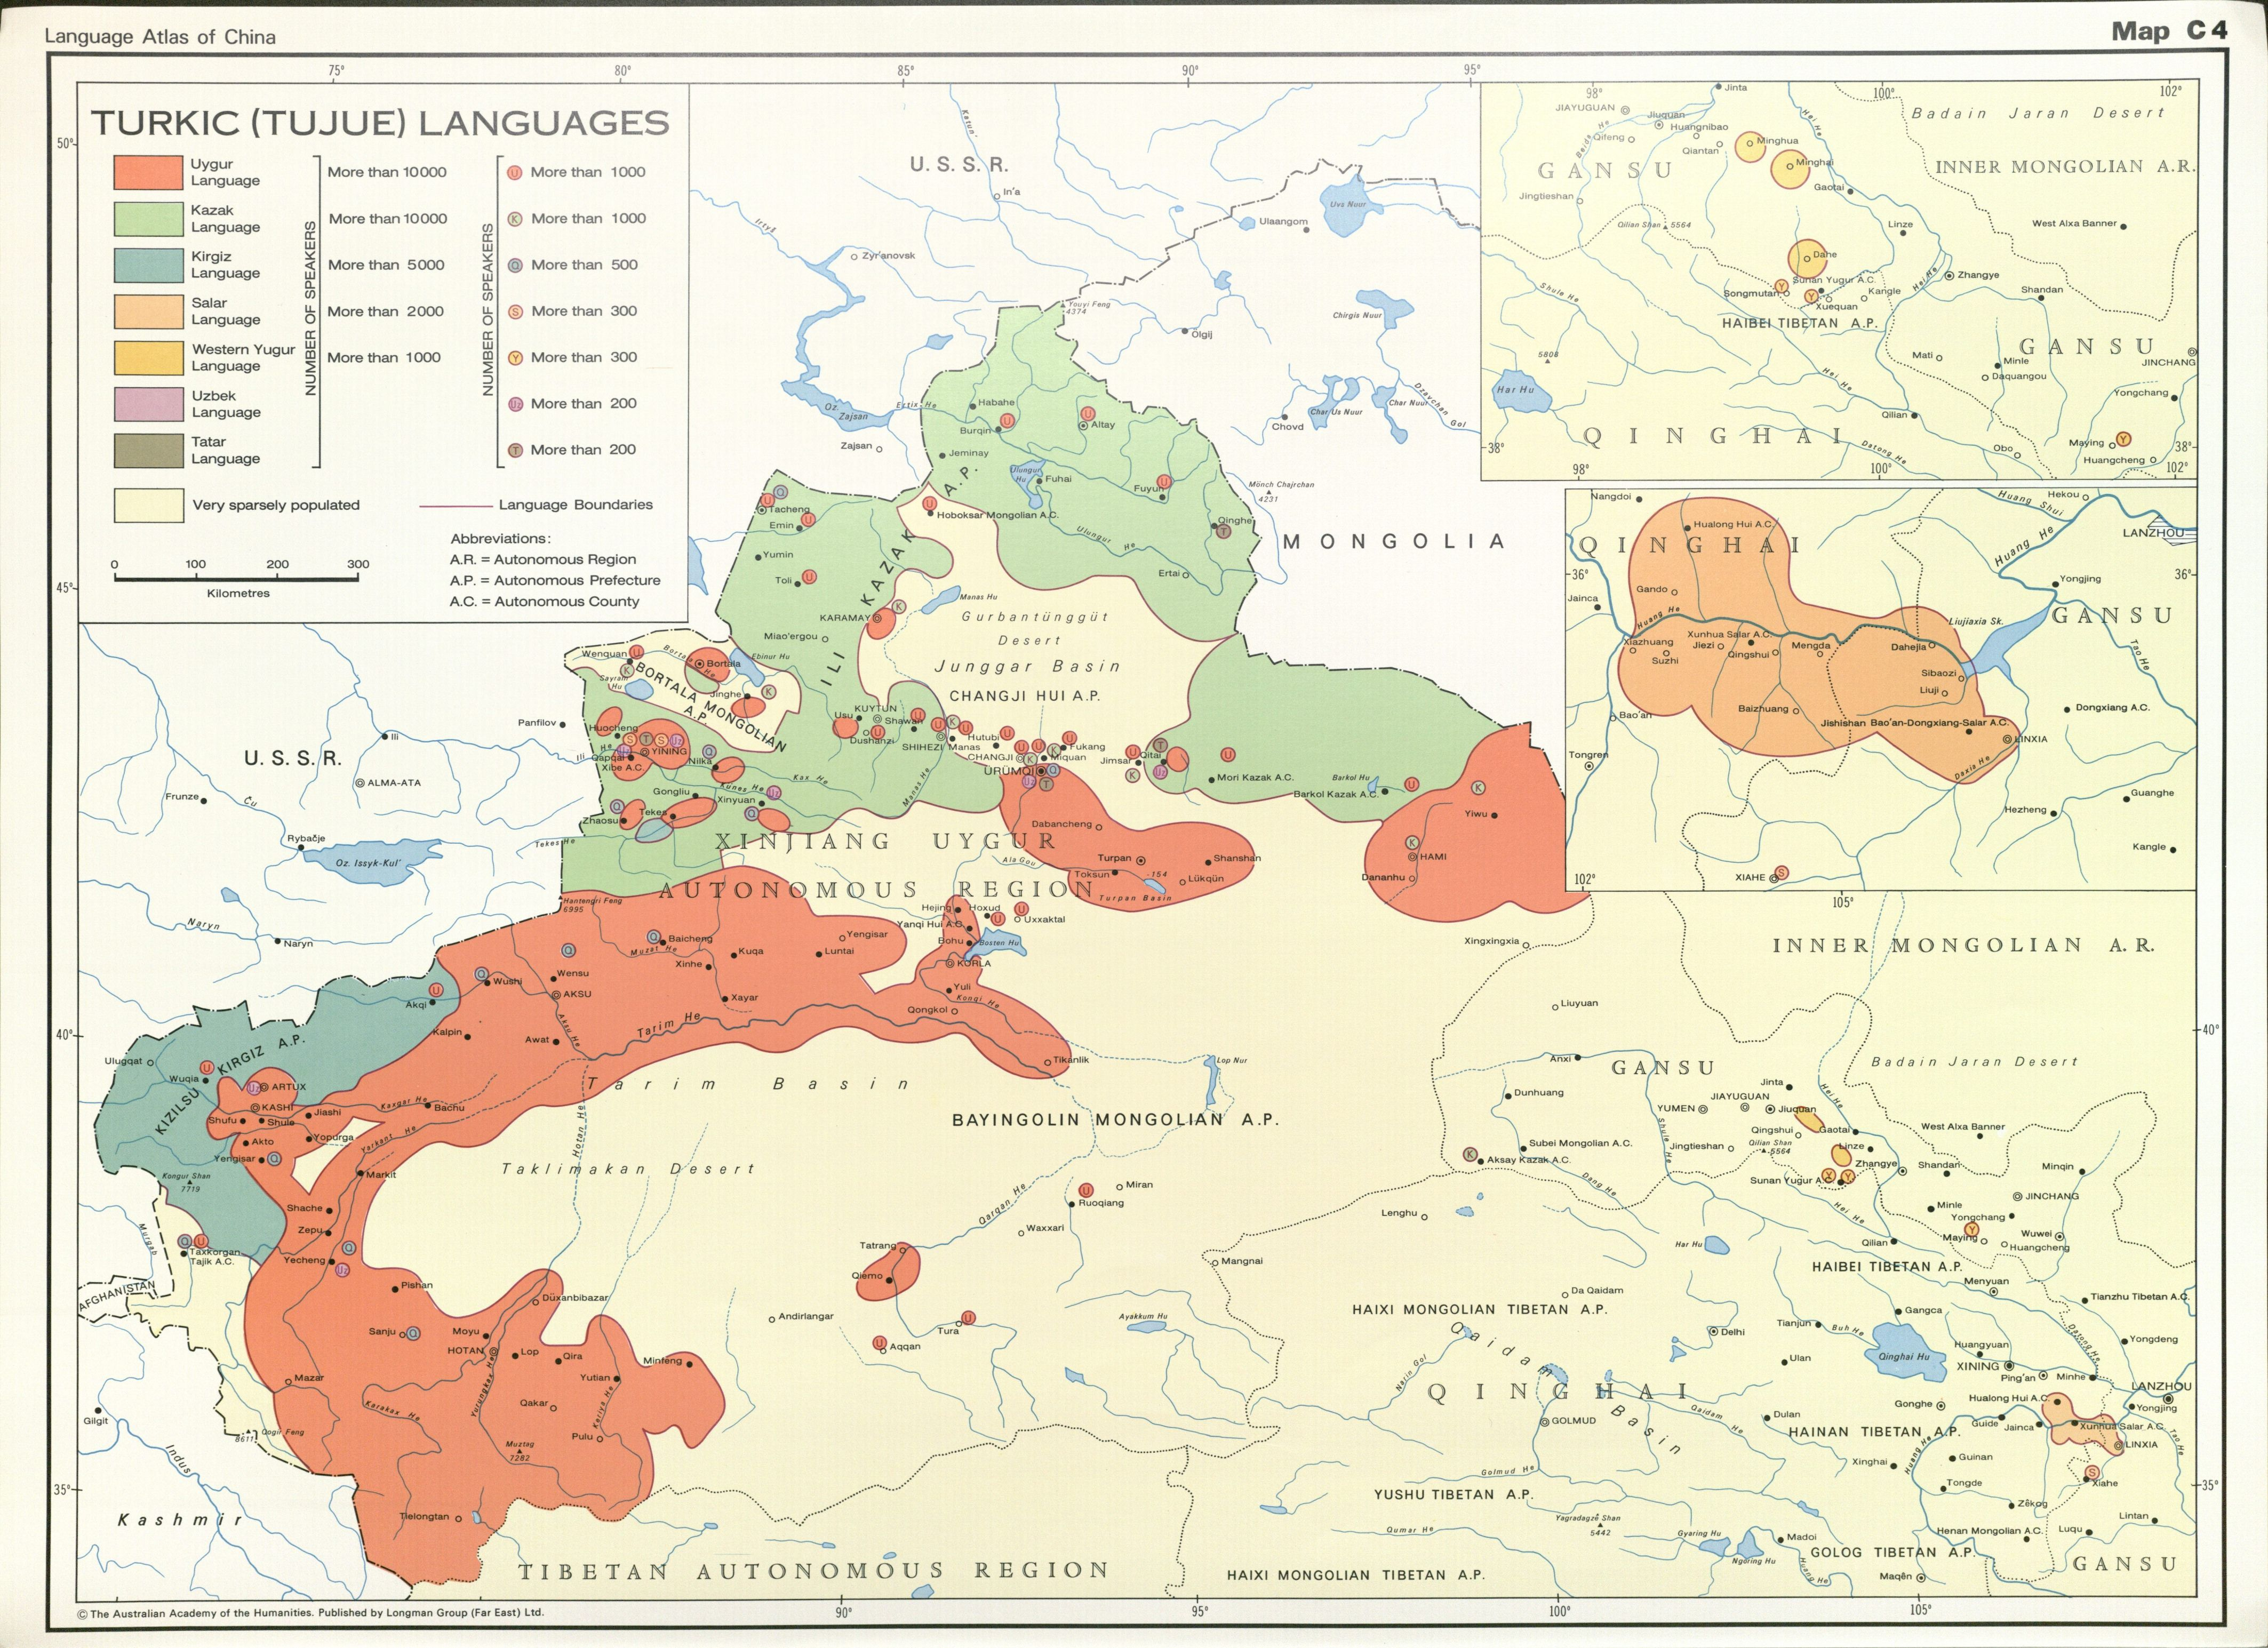 Language Atlas of China Turkic Tujue Languages